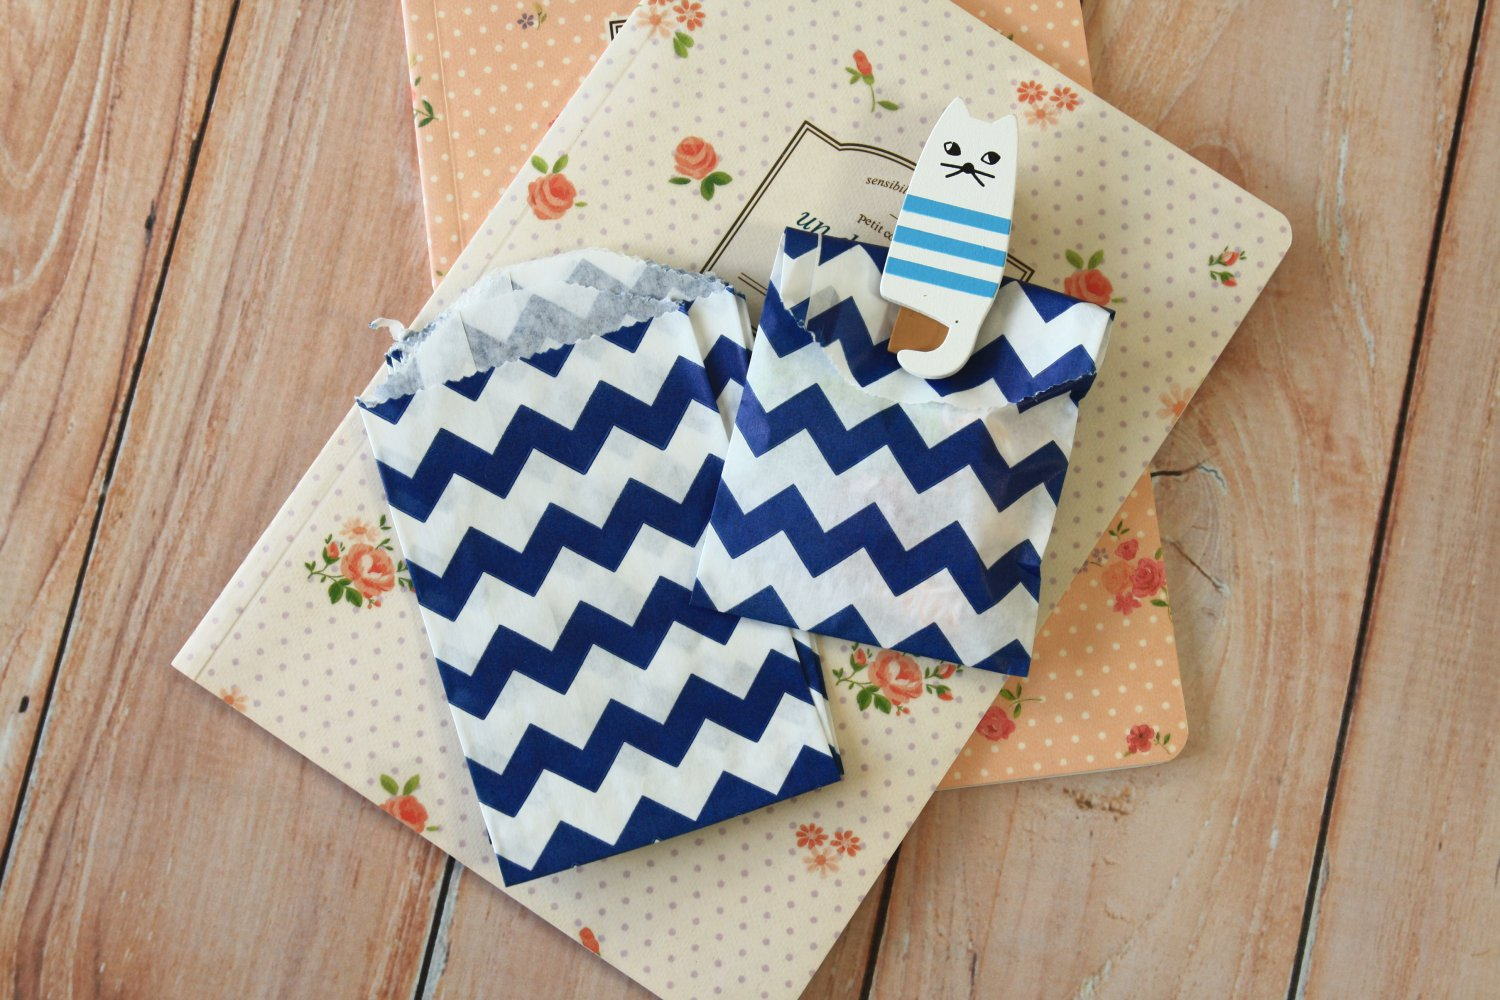 Navy Blue Chevron Itty Bitty Bags small paper bags